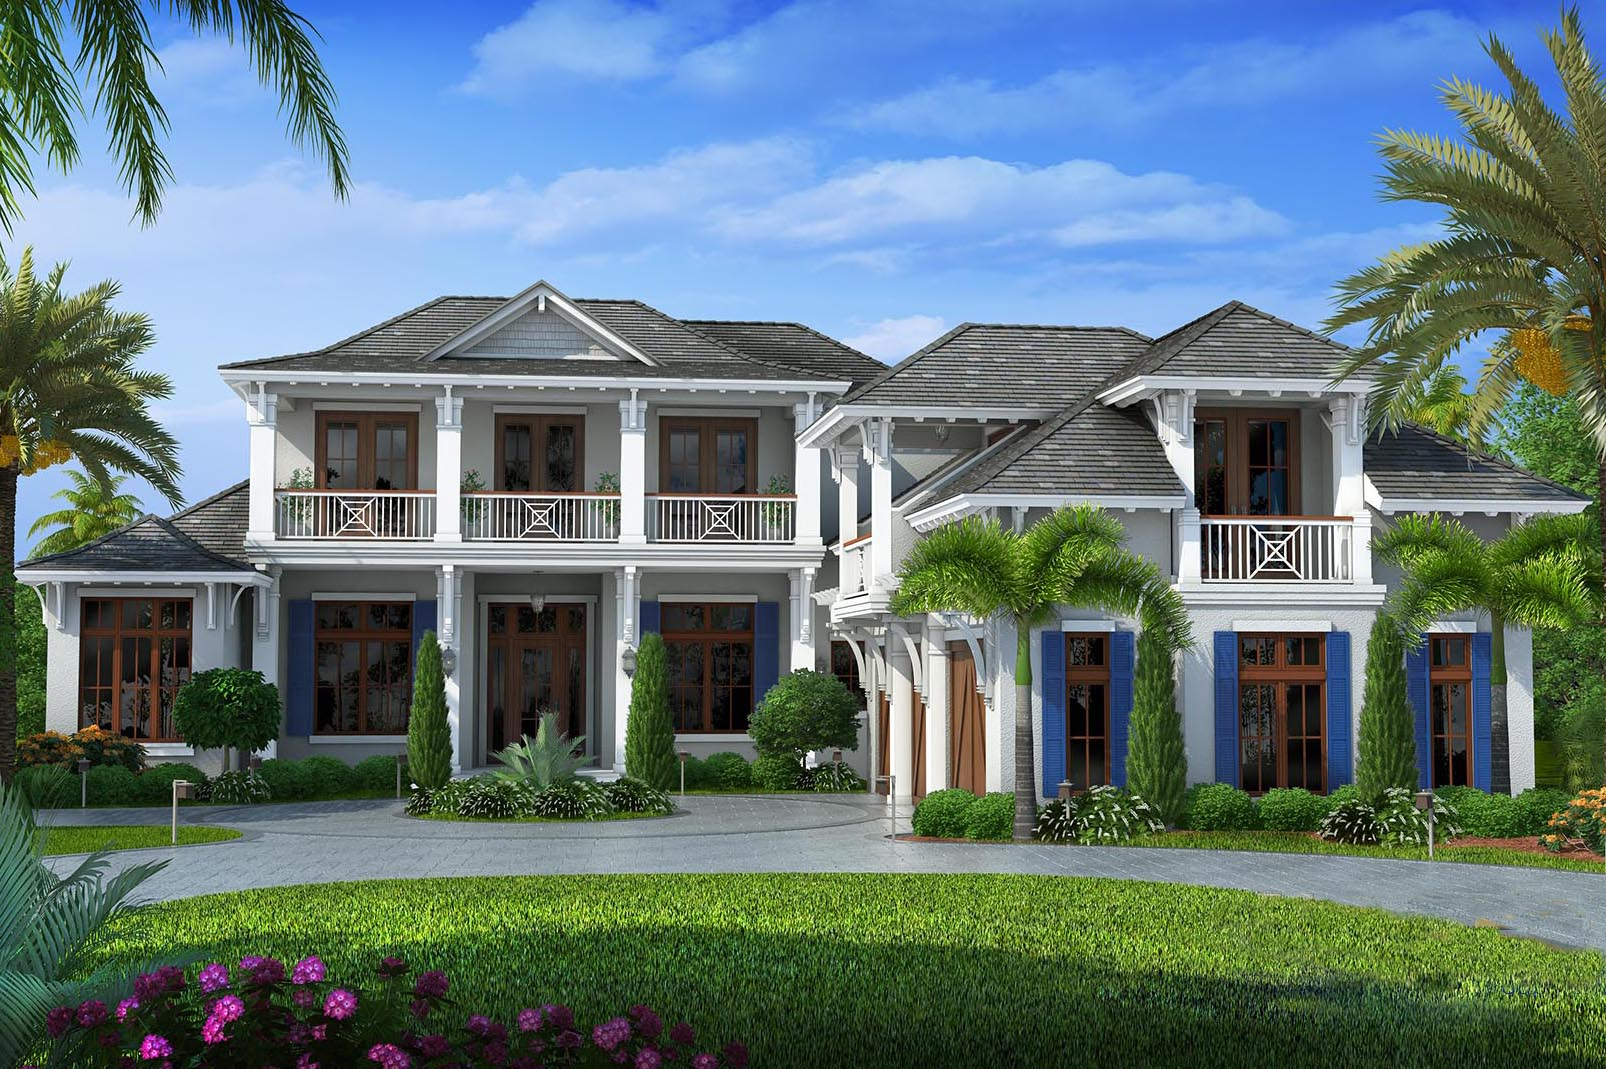 Upscale florida home plan 66327we 1st floor master for Florida cottage plans